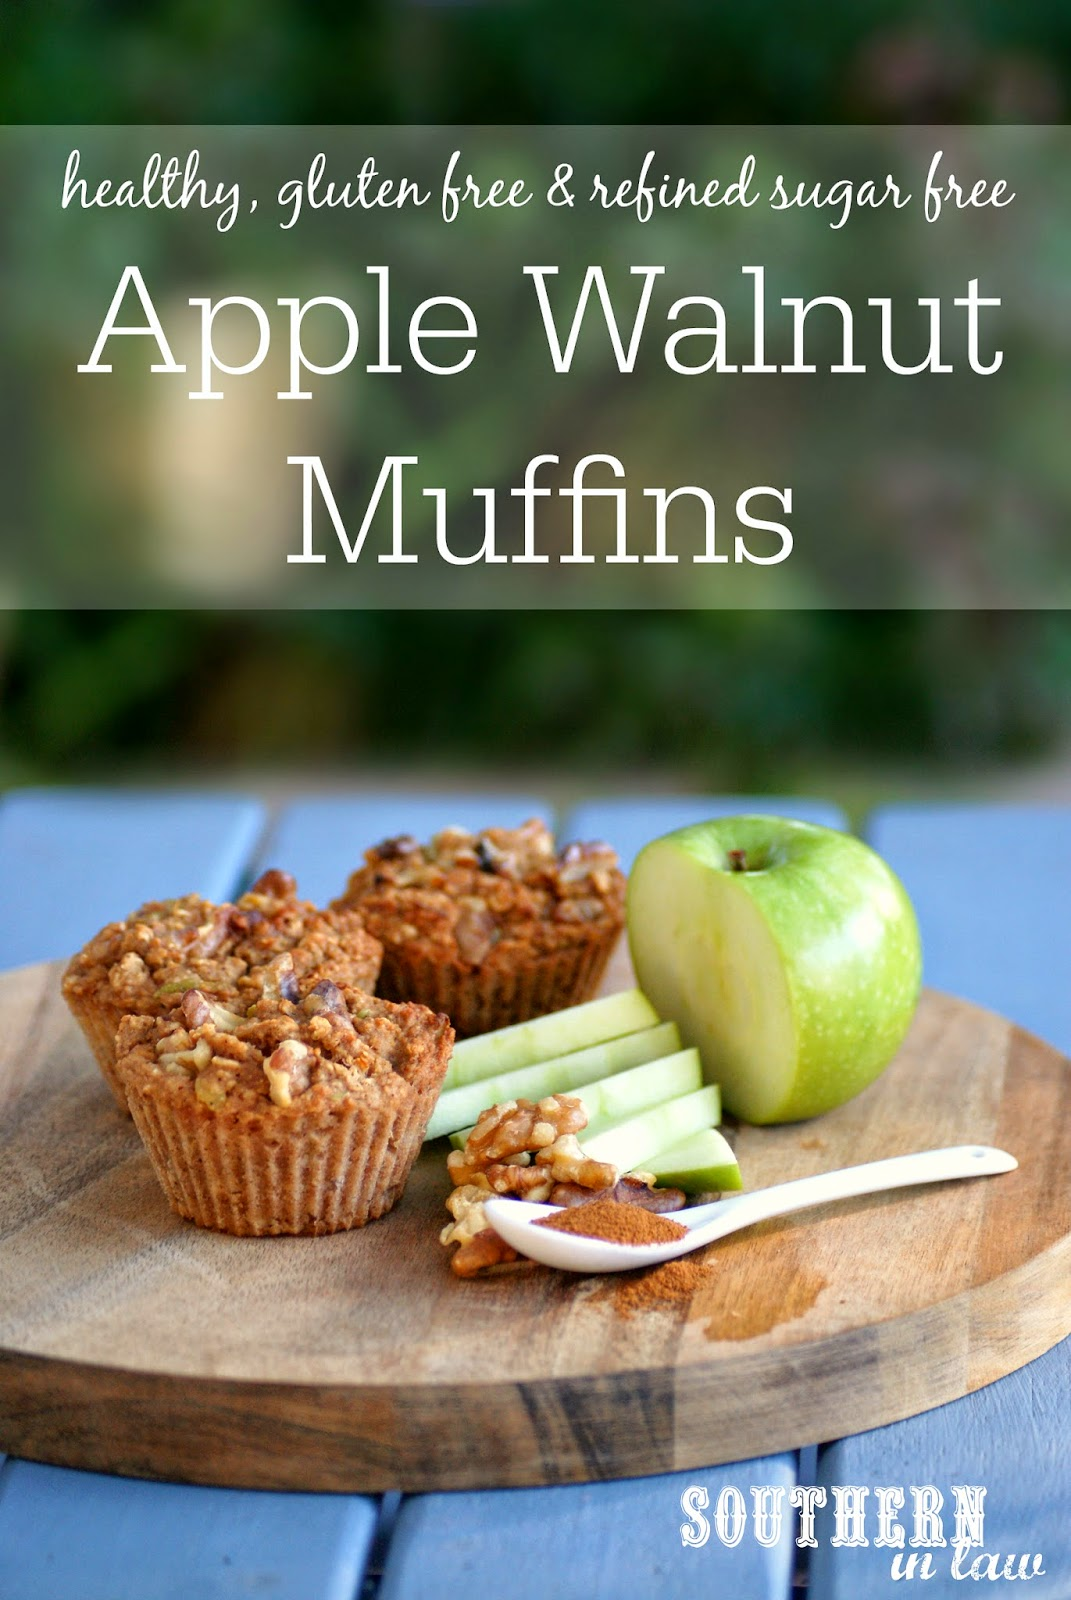 Sugar Free Apple Walnut Muffins Recipe - healthy, gluten free, low fat, refined sugar free and freezer friendly muffins recipe